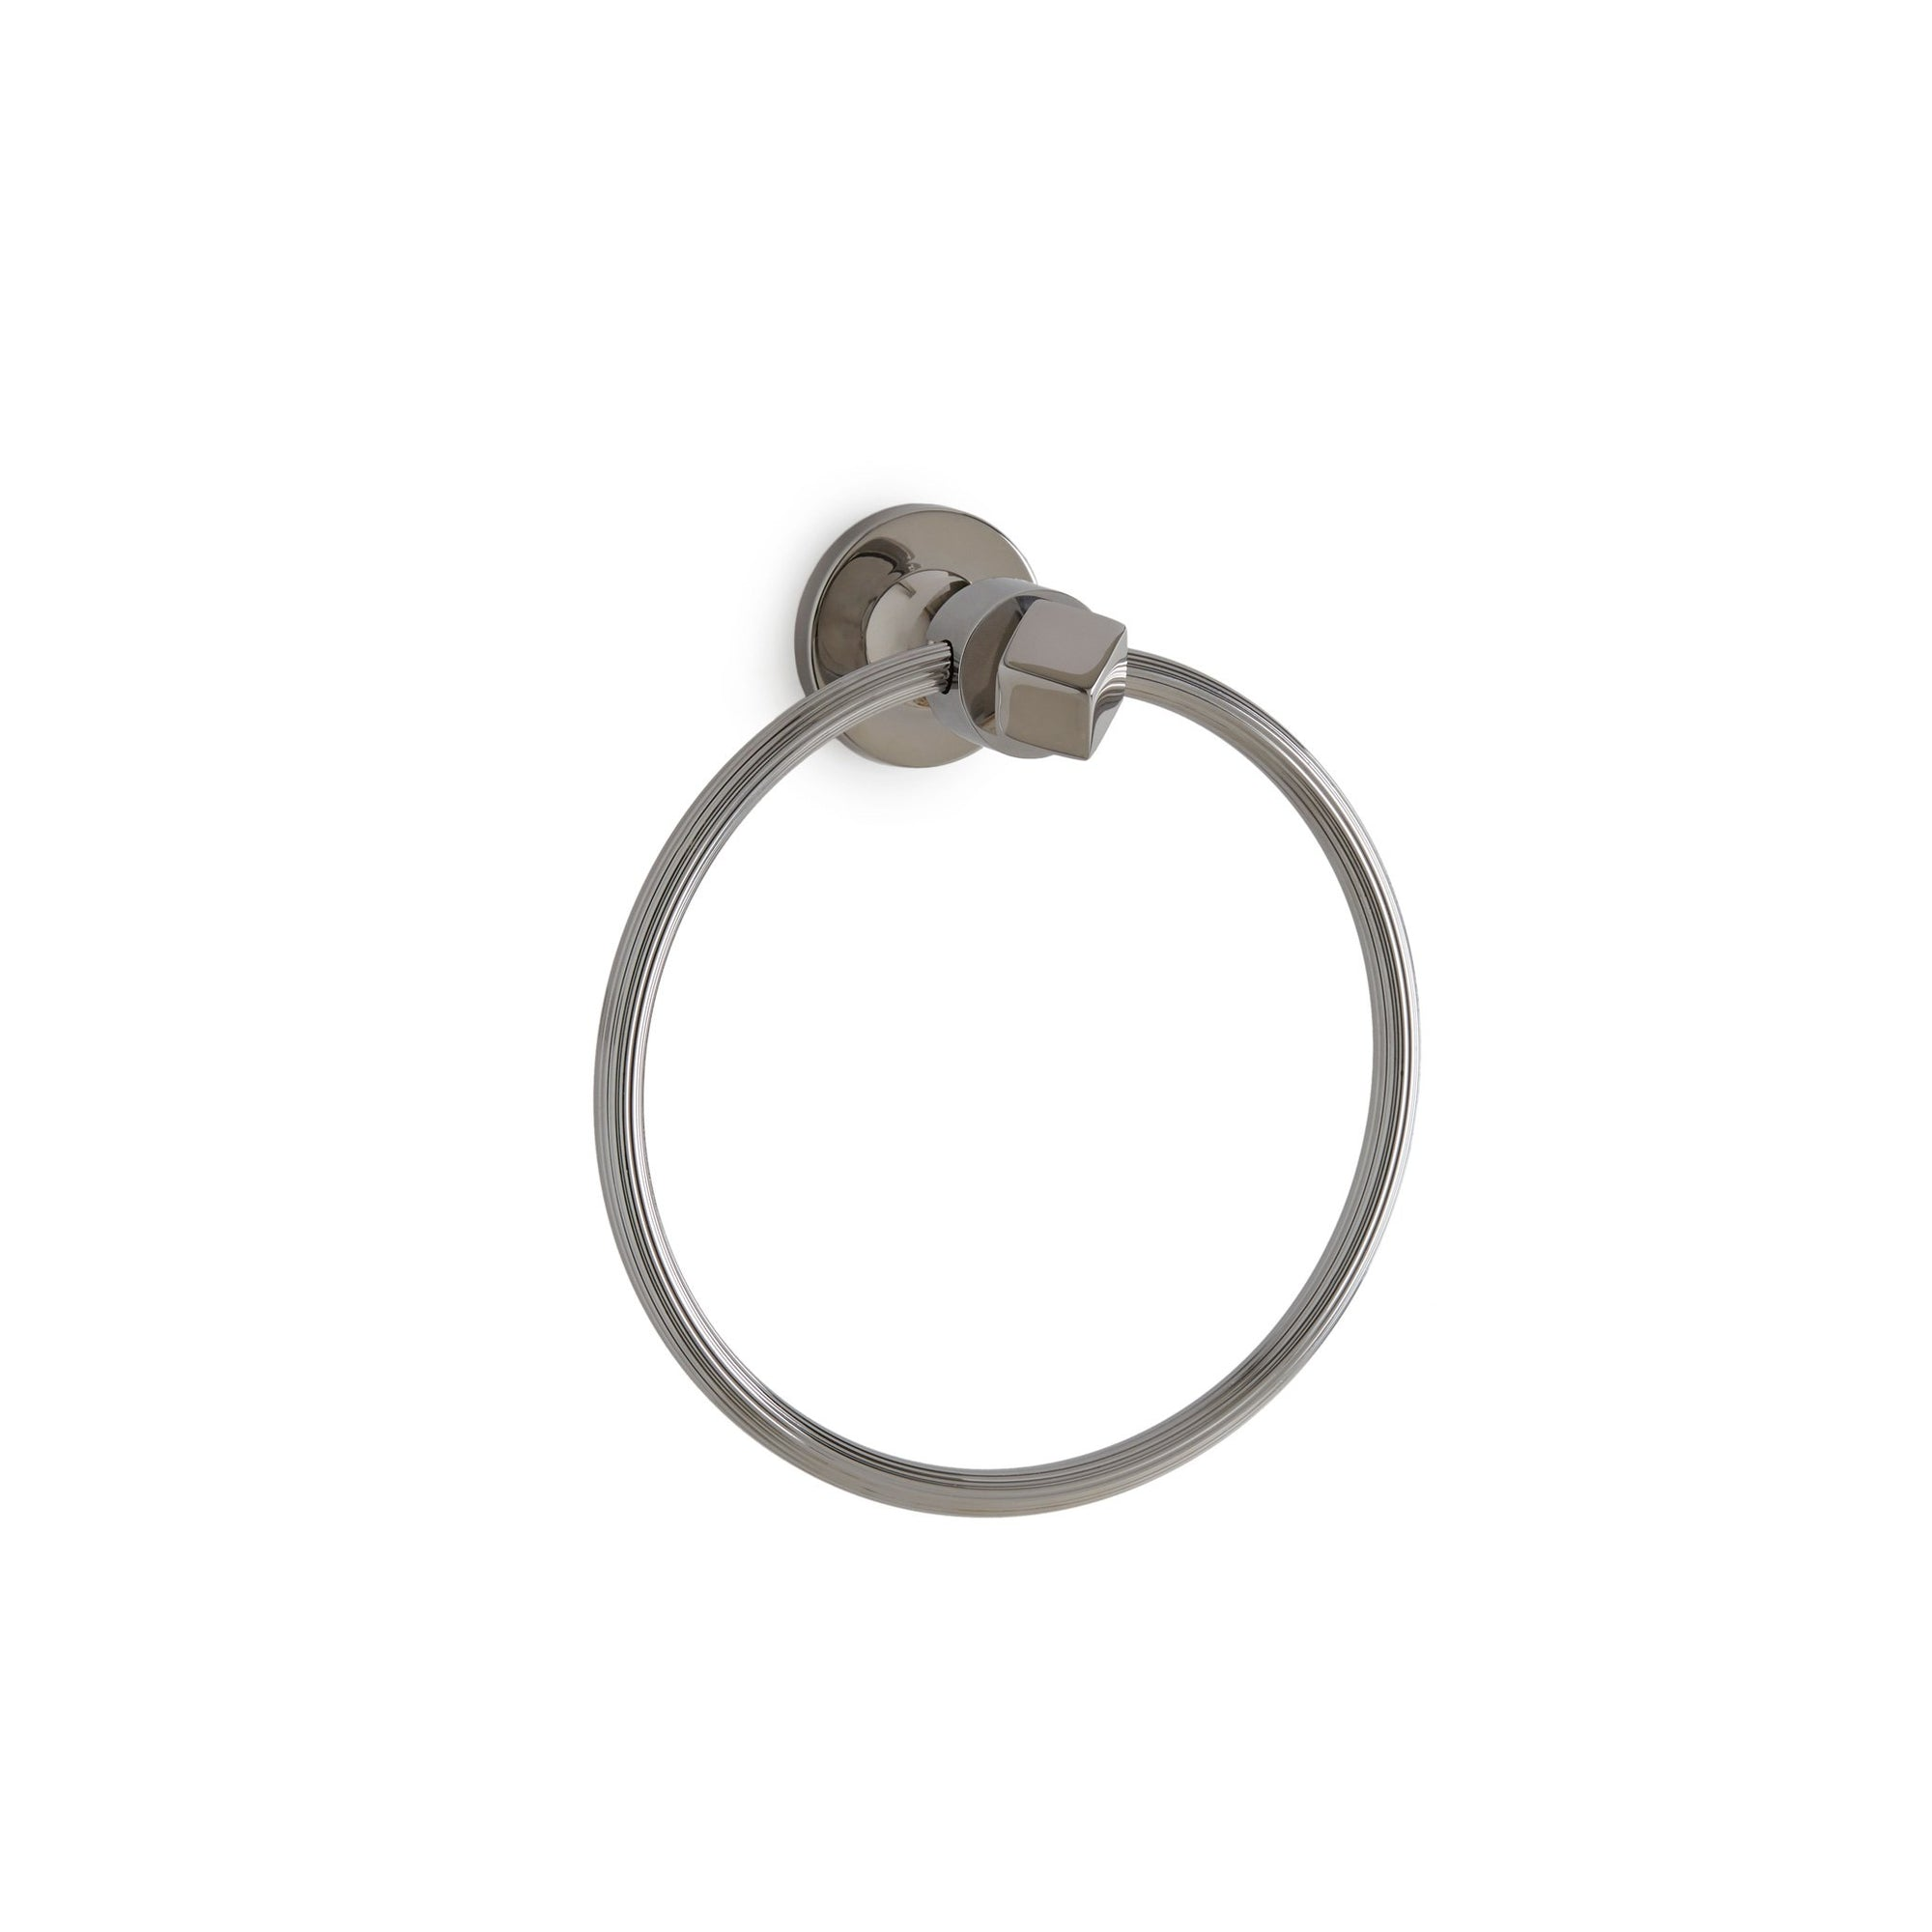 3446-CP Sherle Wagner International Tangent Crystal Fluted Towel Ring in Polished Chrome metal finish